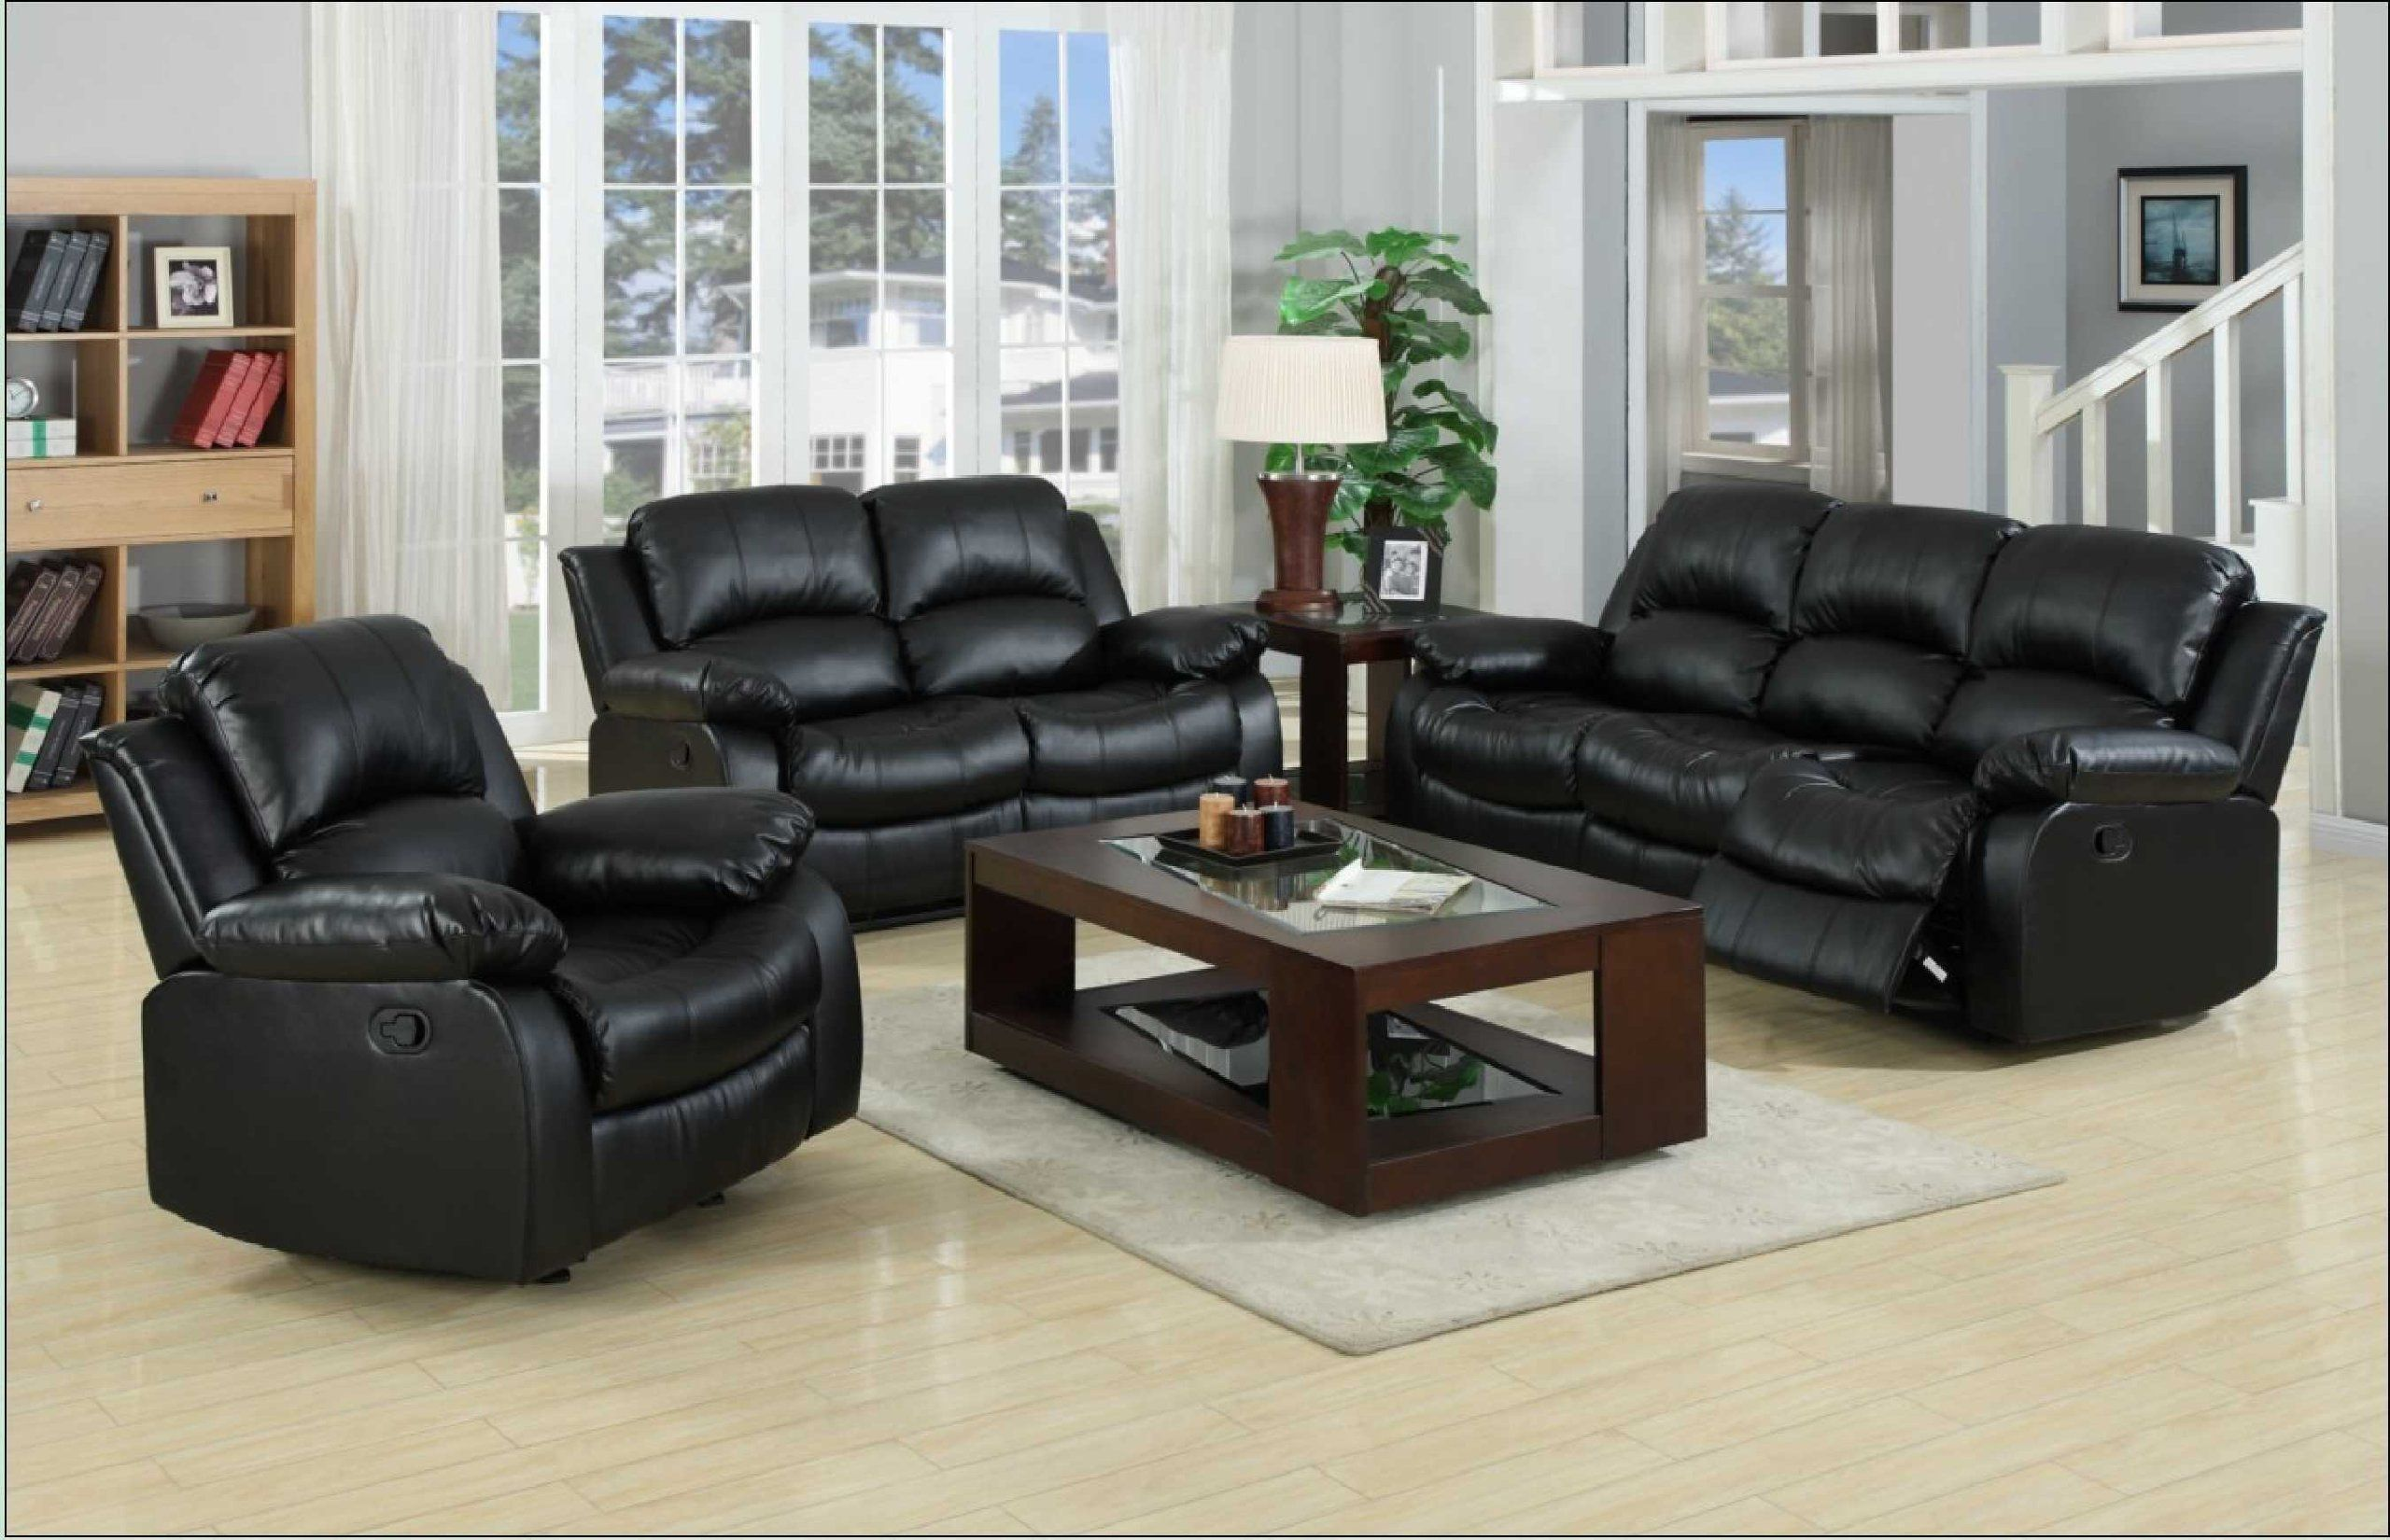 Beau Yuan Tai Kaden Black Bonded Leather Sofa. Soft And Durable Bonded Leather  Match. Motion